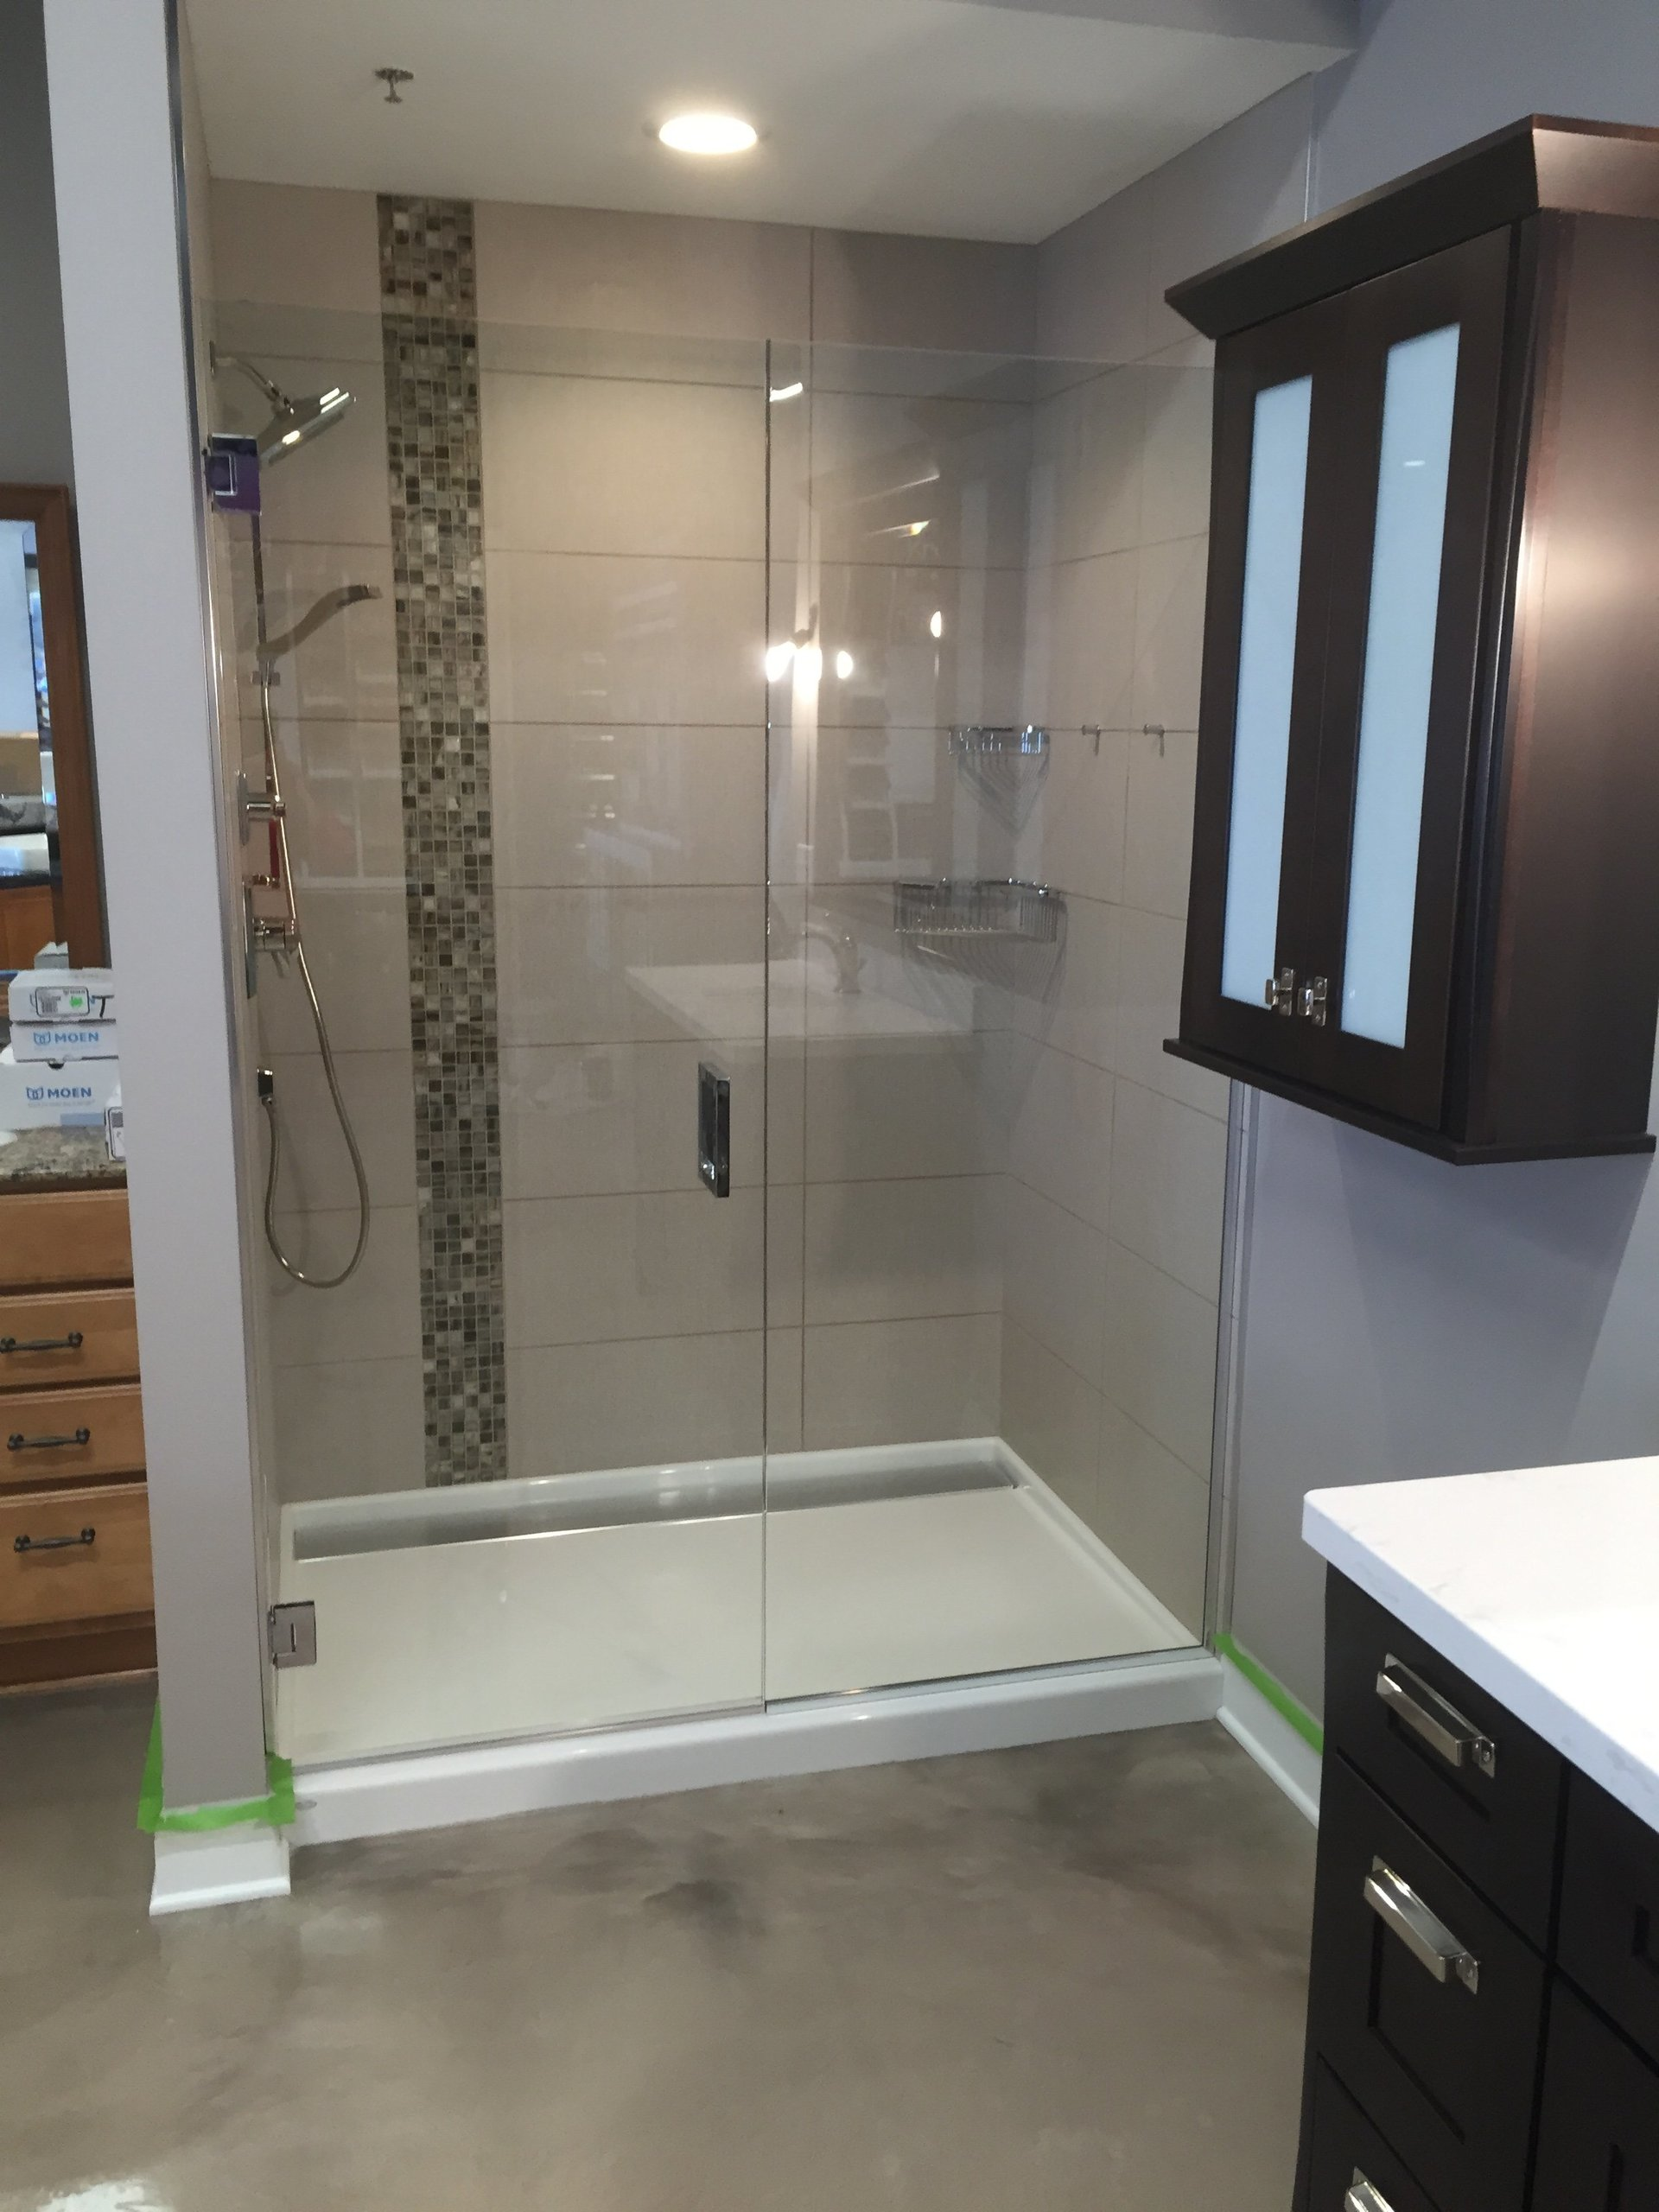 custom replacement stupendous denverseamless of parts tag shower photo dreaded door size seamlesser tags enclosures made doors home seamless depotseamless concept full enclosuresseamless jacksonvillecustom splendor